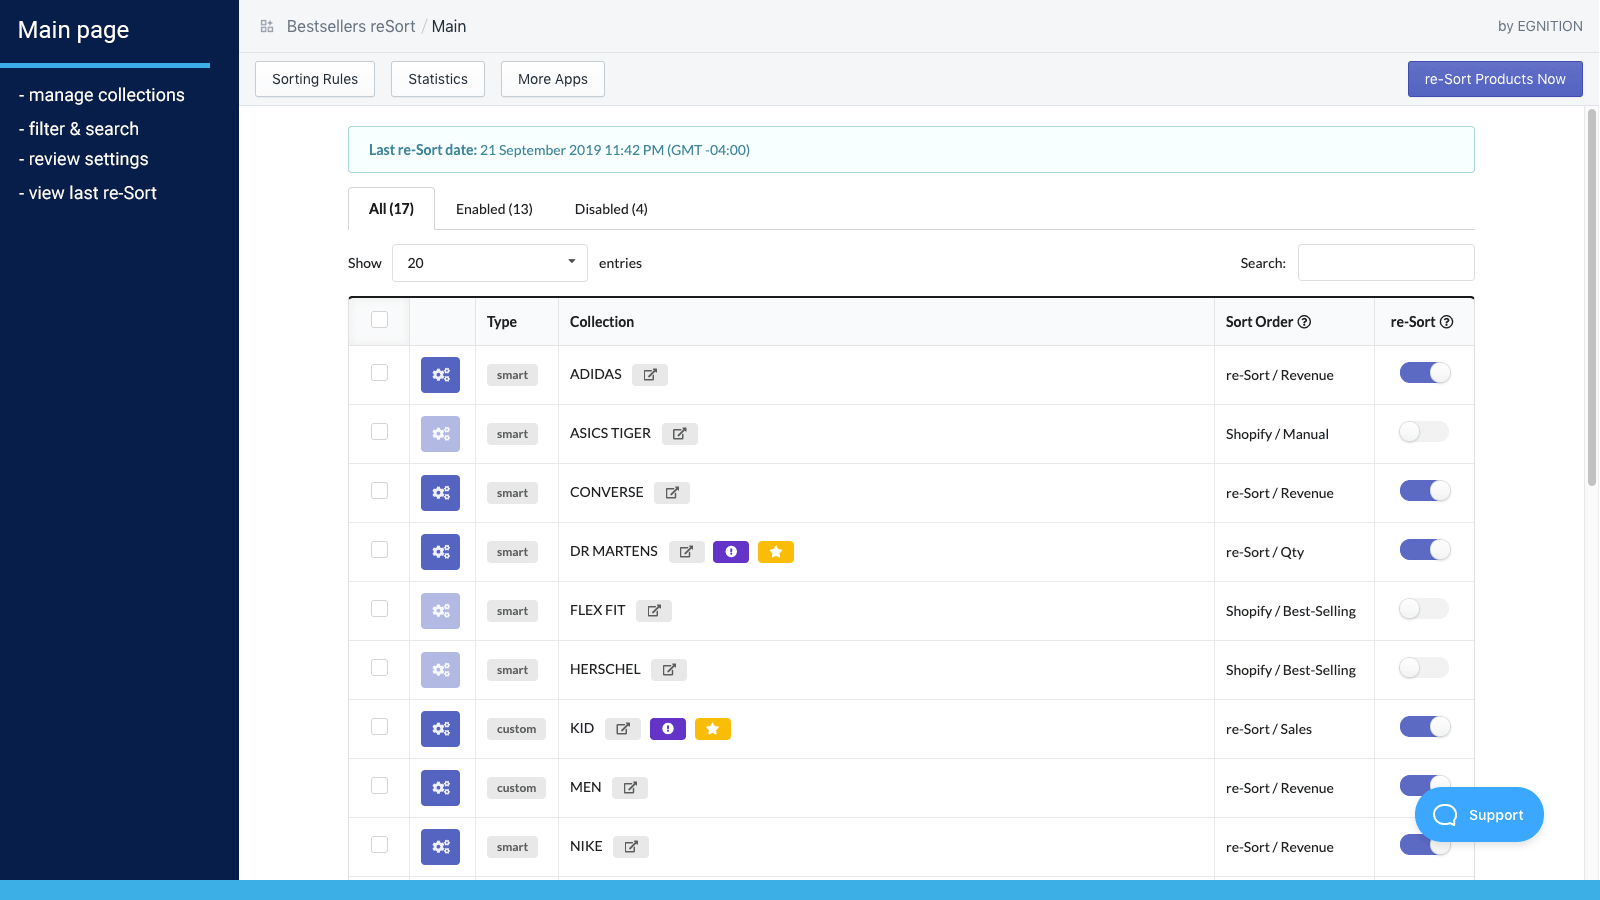 Main page. Manage collections, enable sorting & review setup.